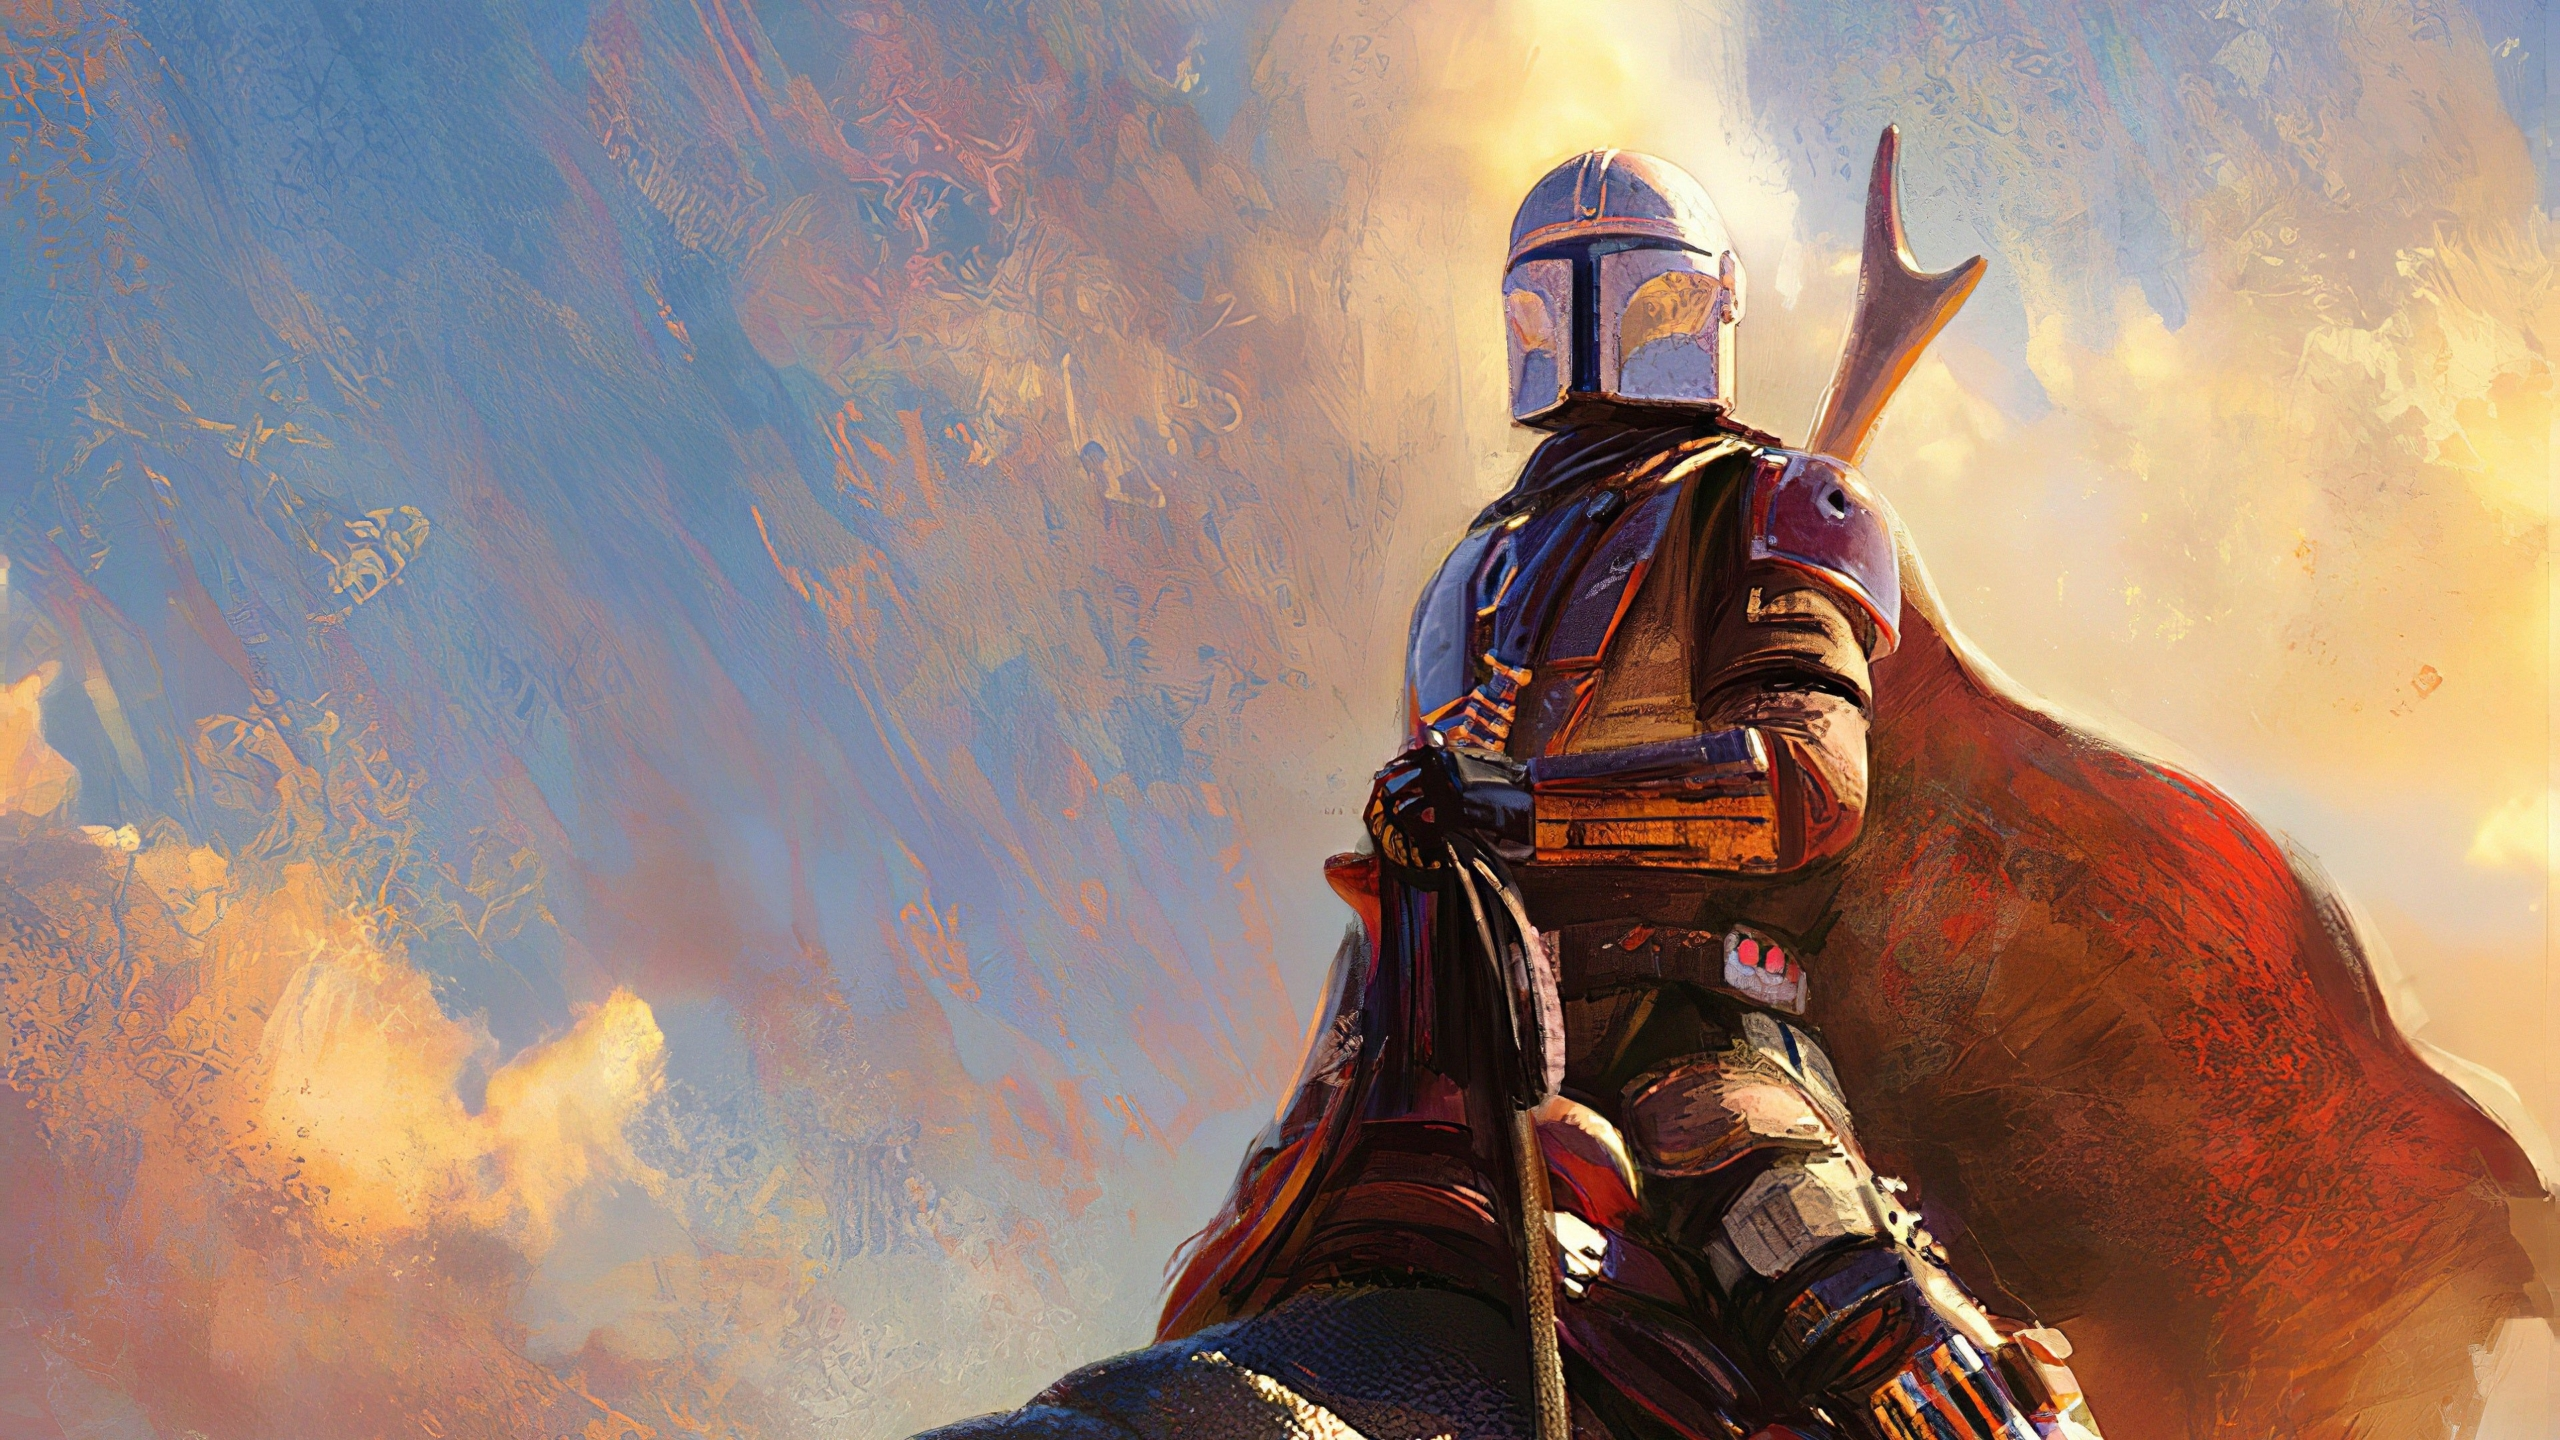 How To Change the Desktop Wallpaper with Mandalorian